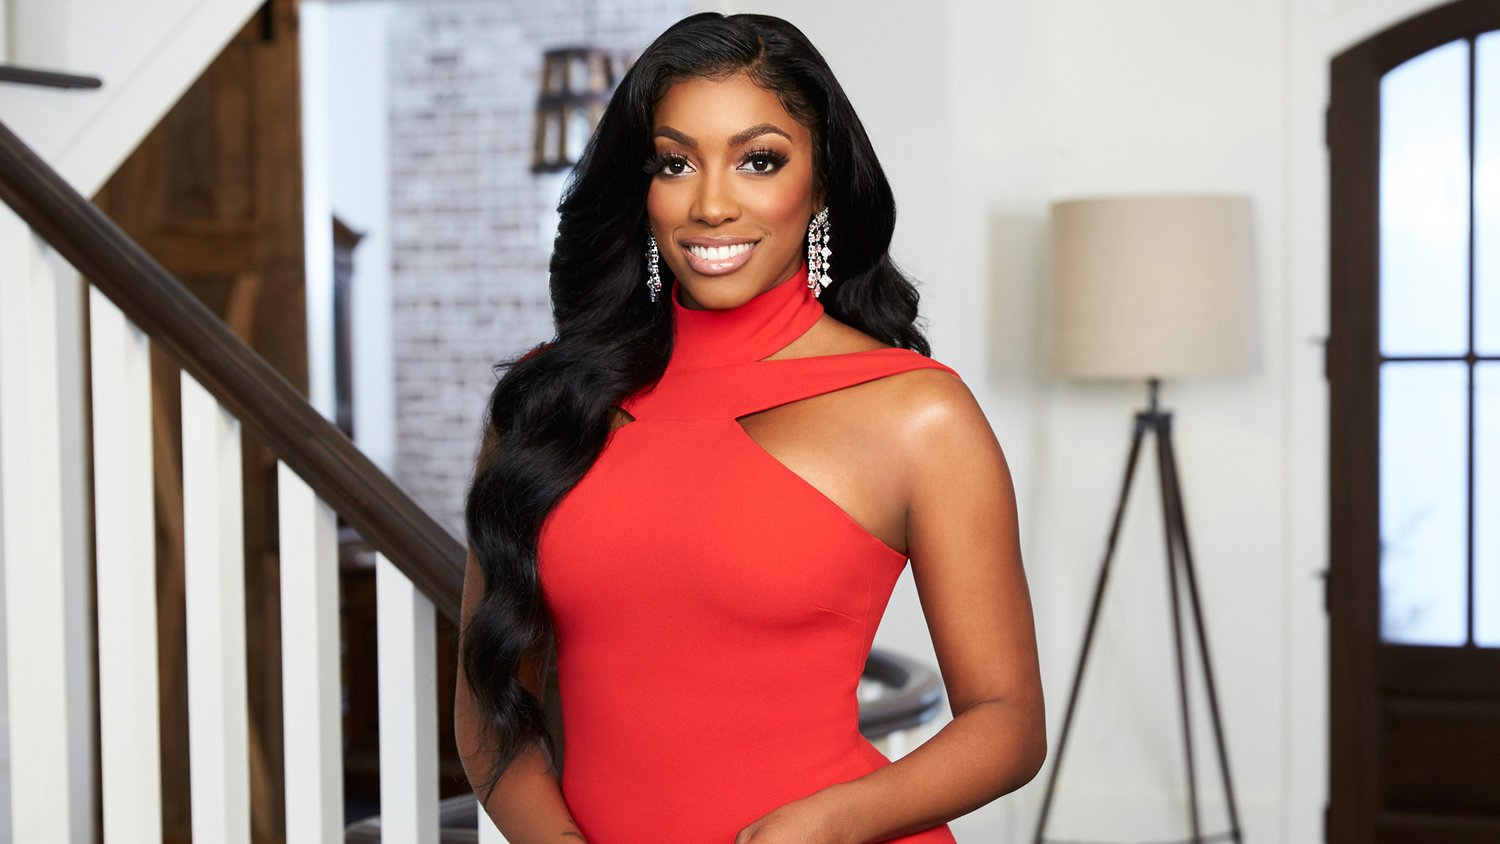 Porsha Williams Supports Tamika D. Mallory And Her Message – Check Out What She Had To Say